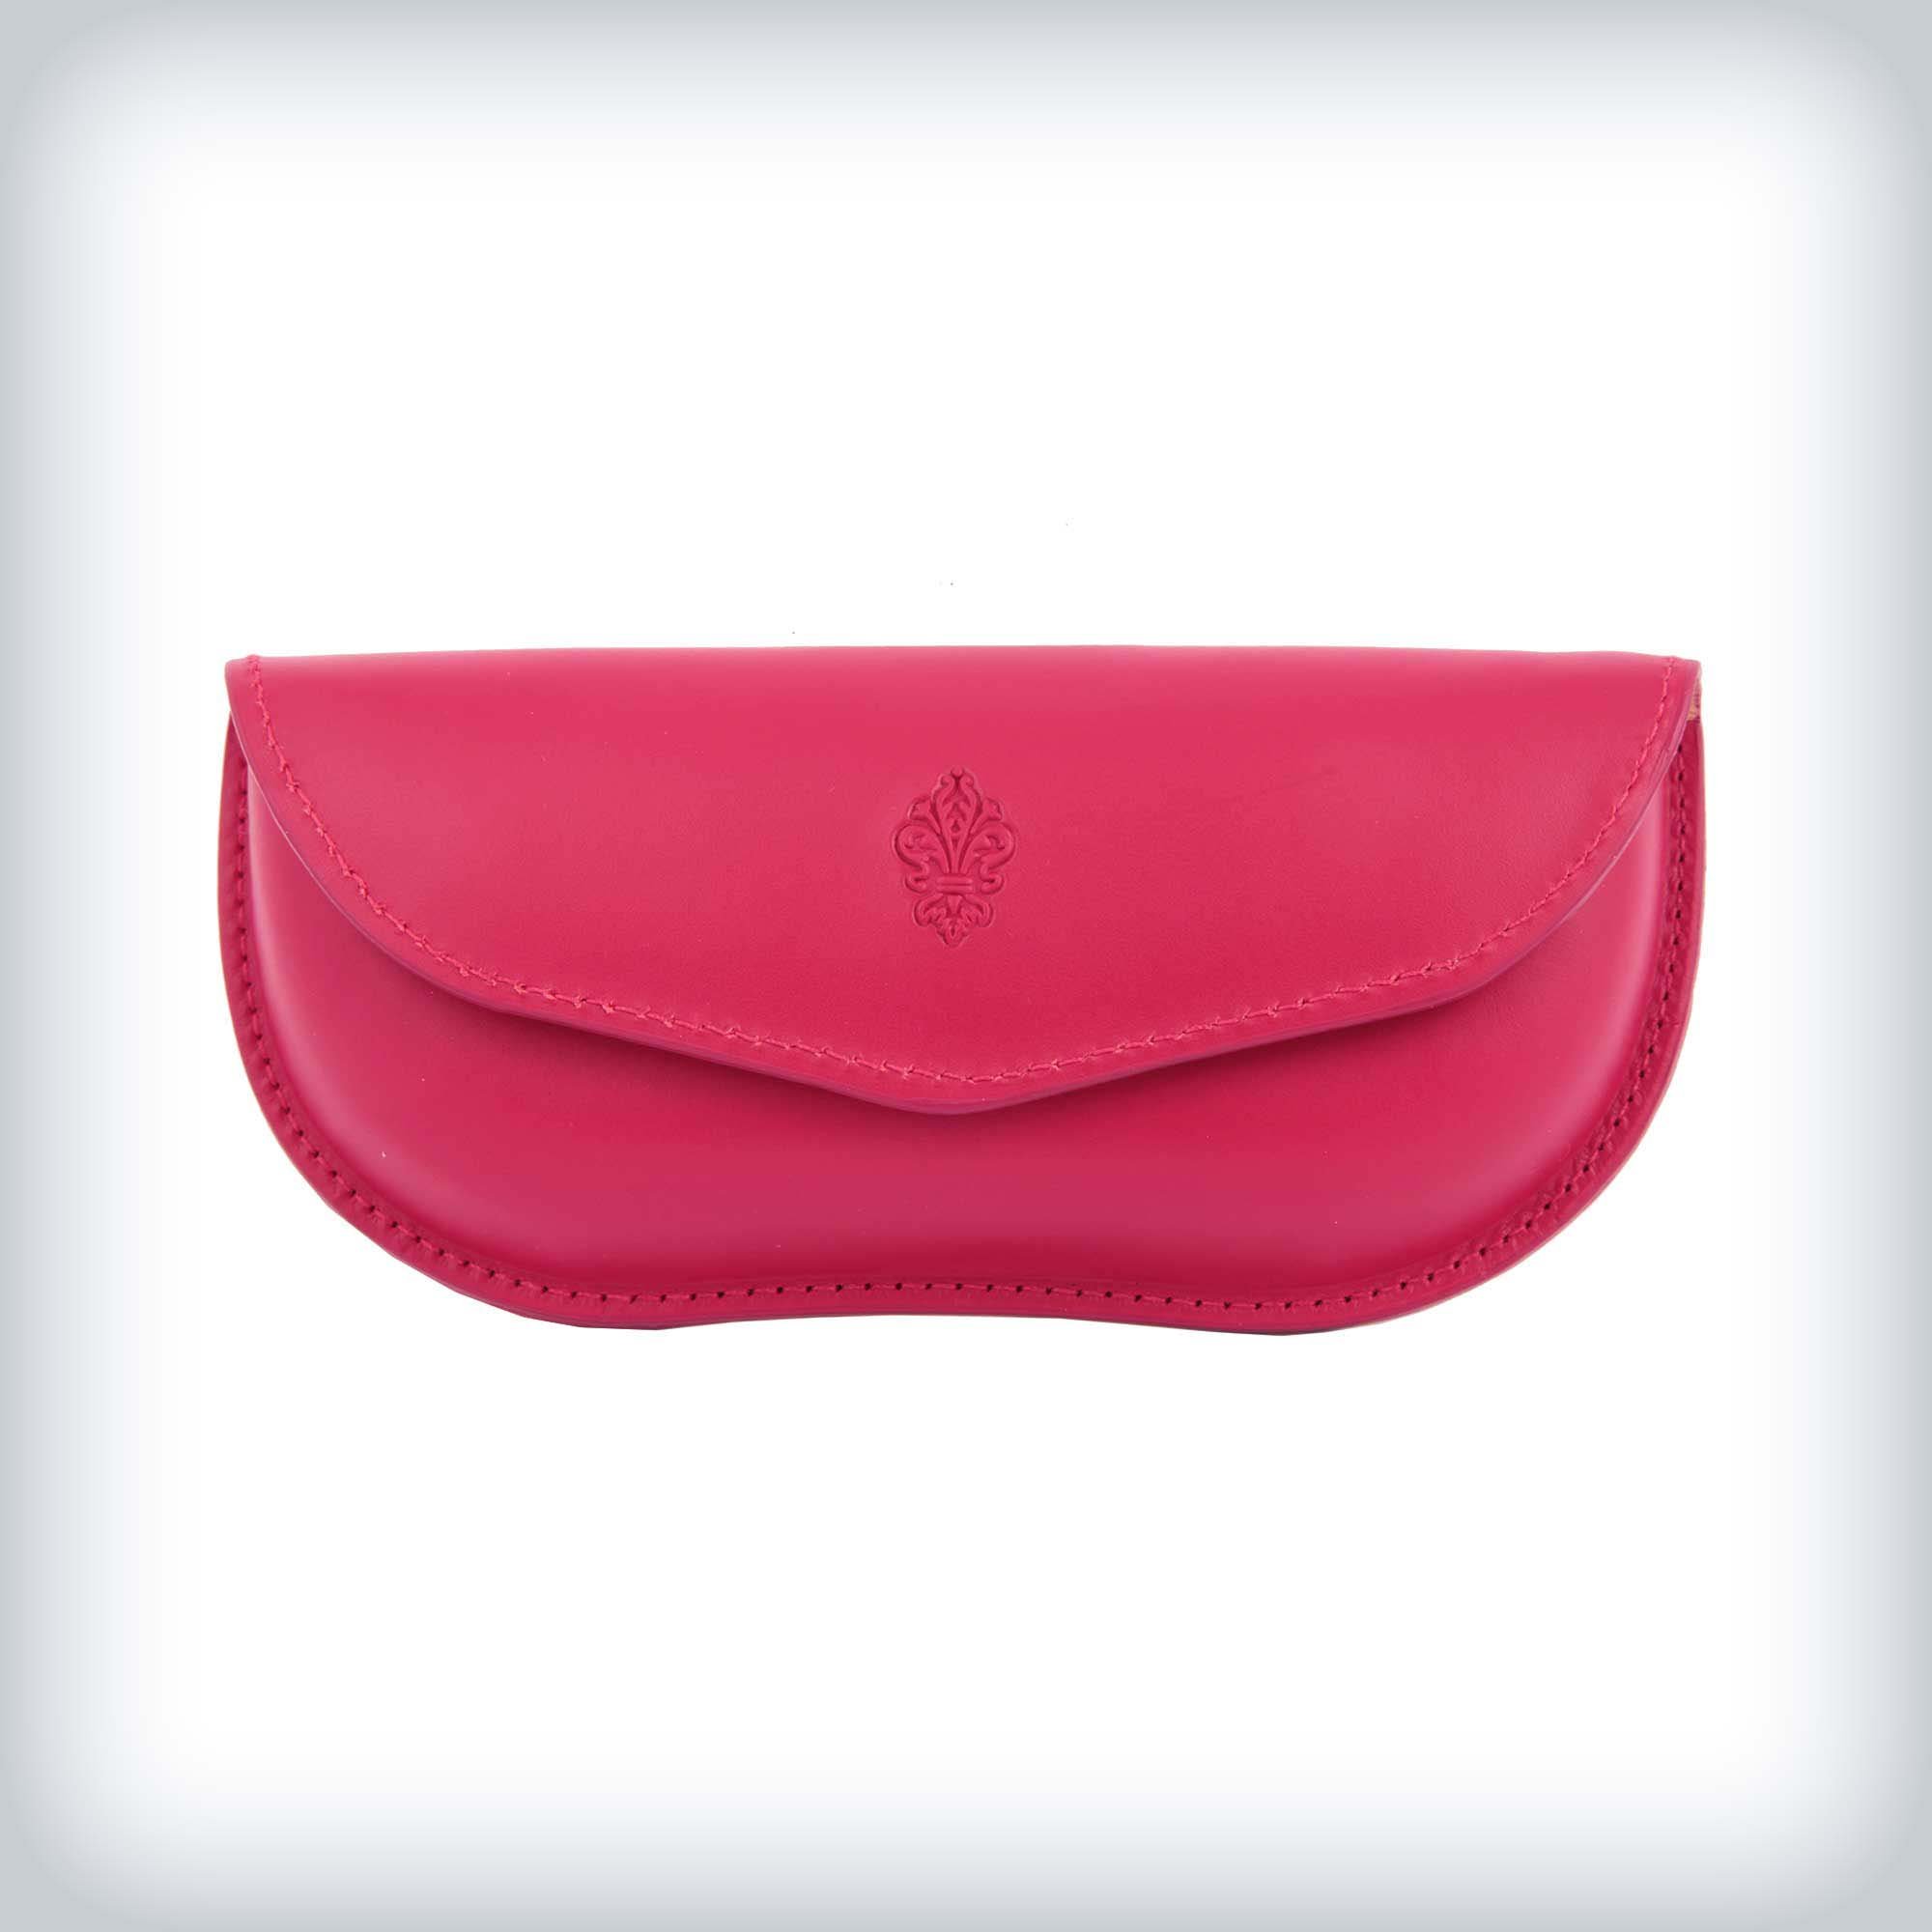 Leather Eyeglass Cases Peruzzi